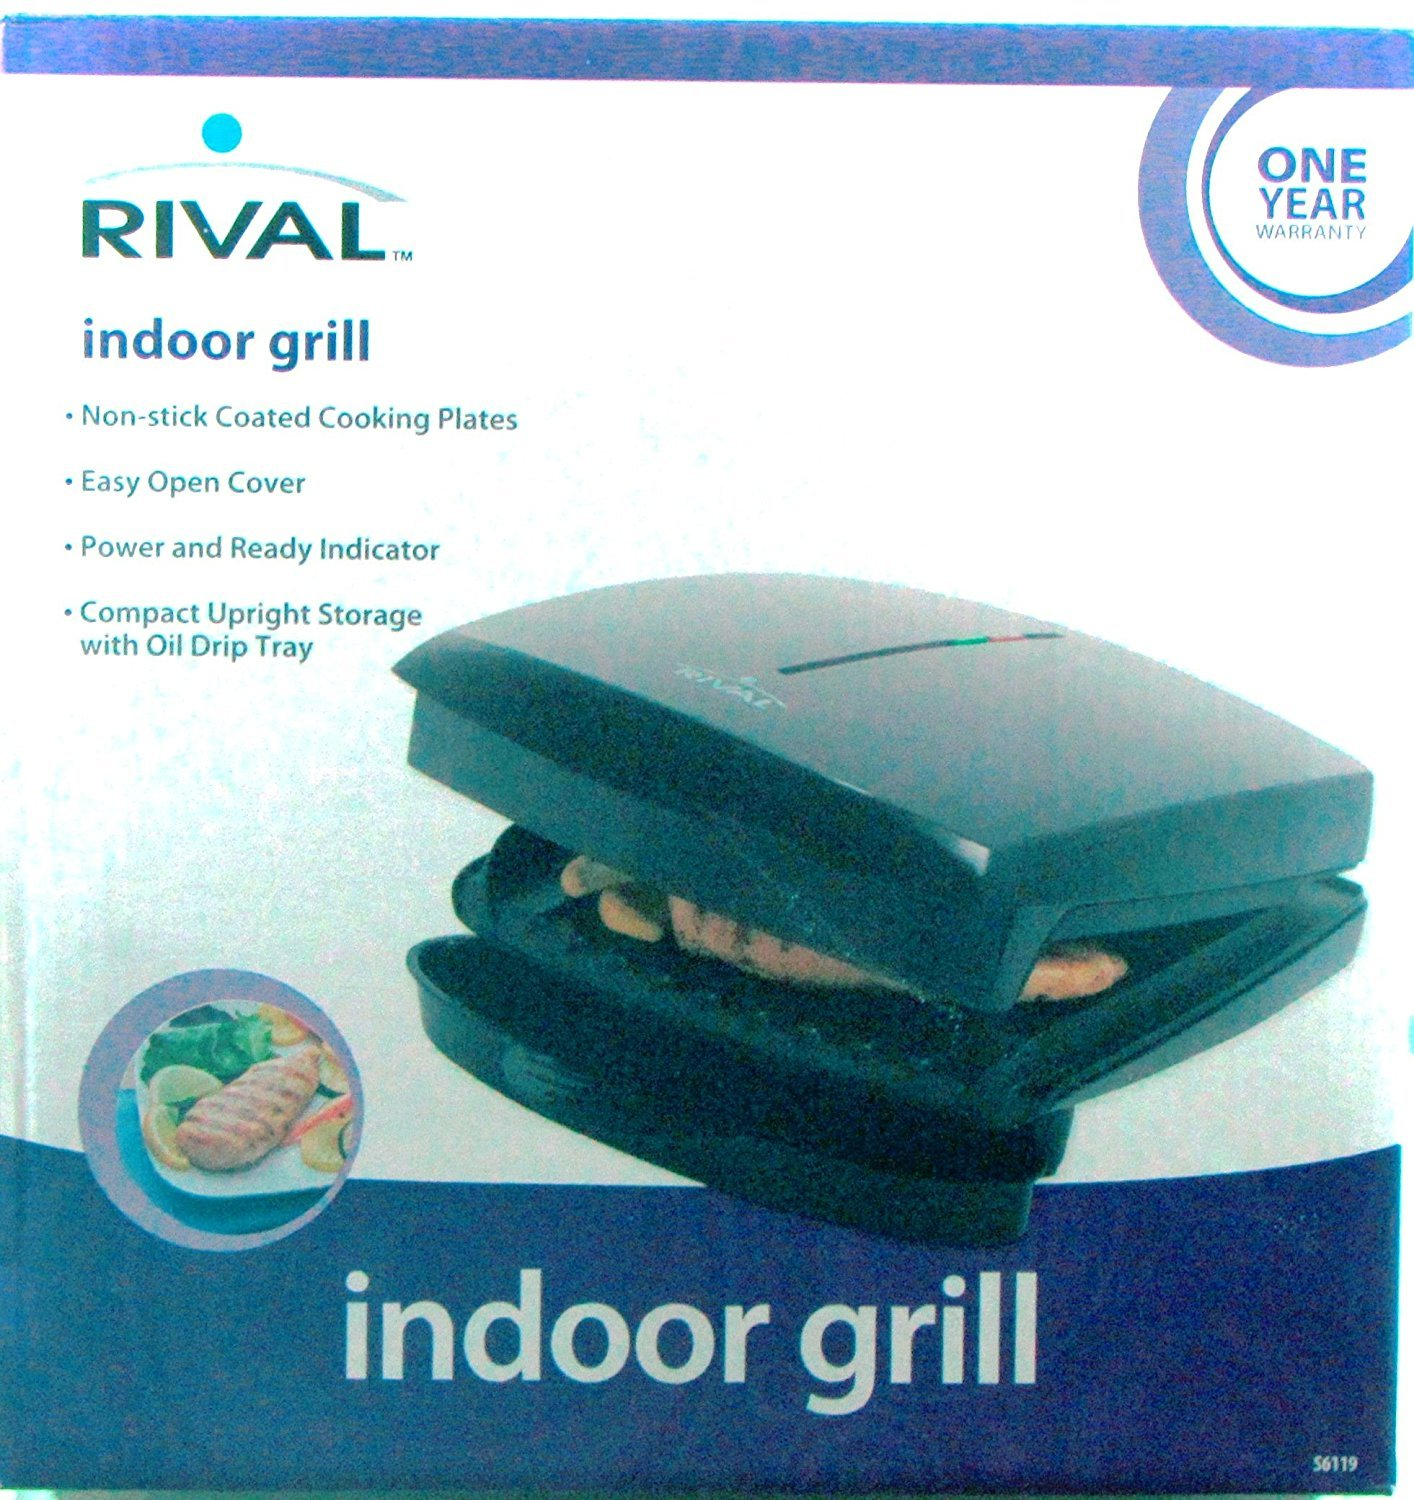 Amazoncom Rival Indoor Grill Kitchen Dining - Compact grill containers